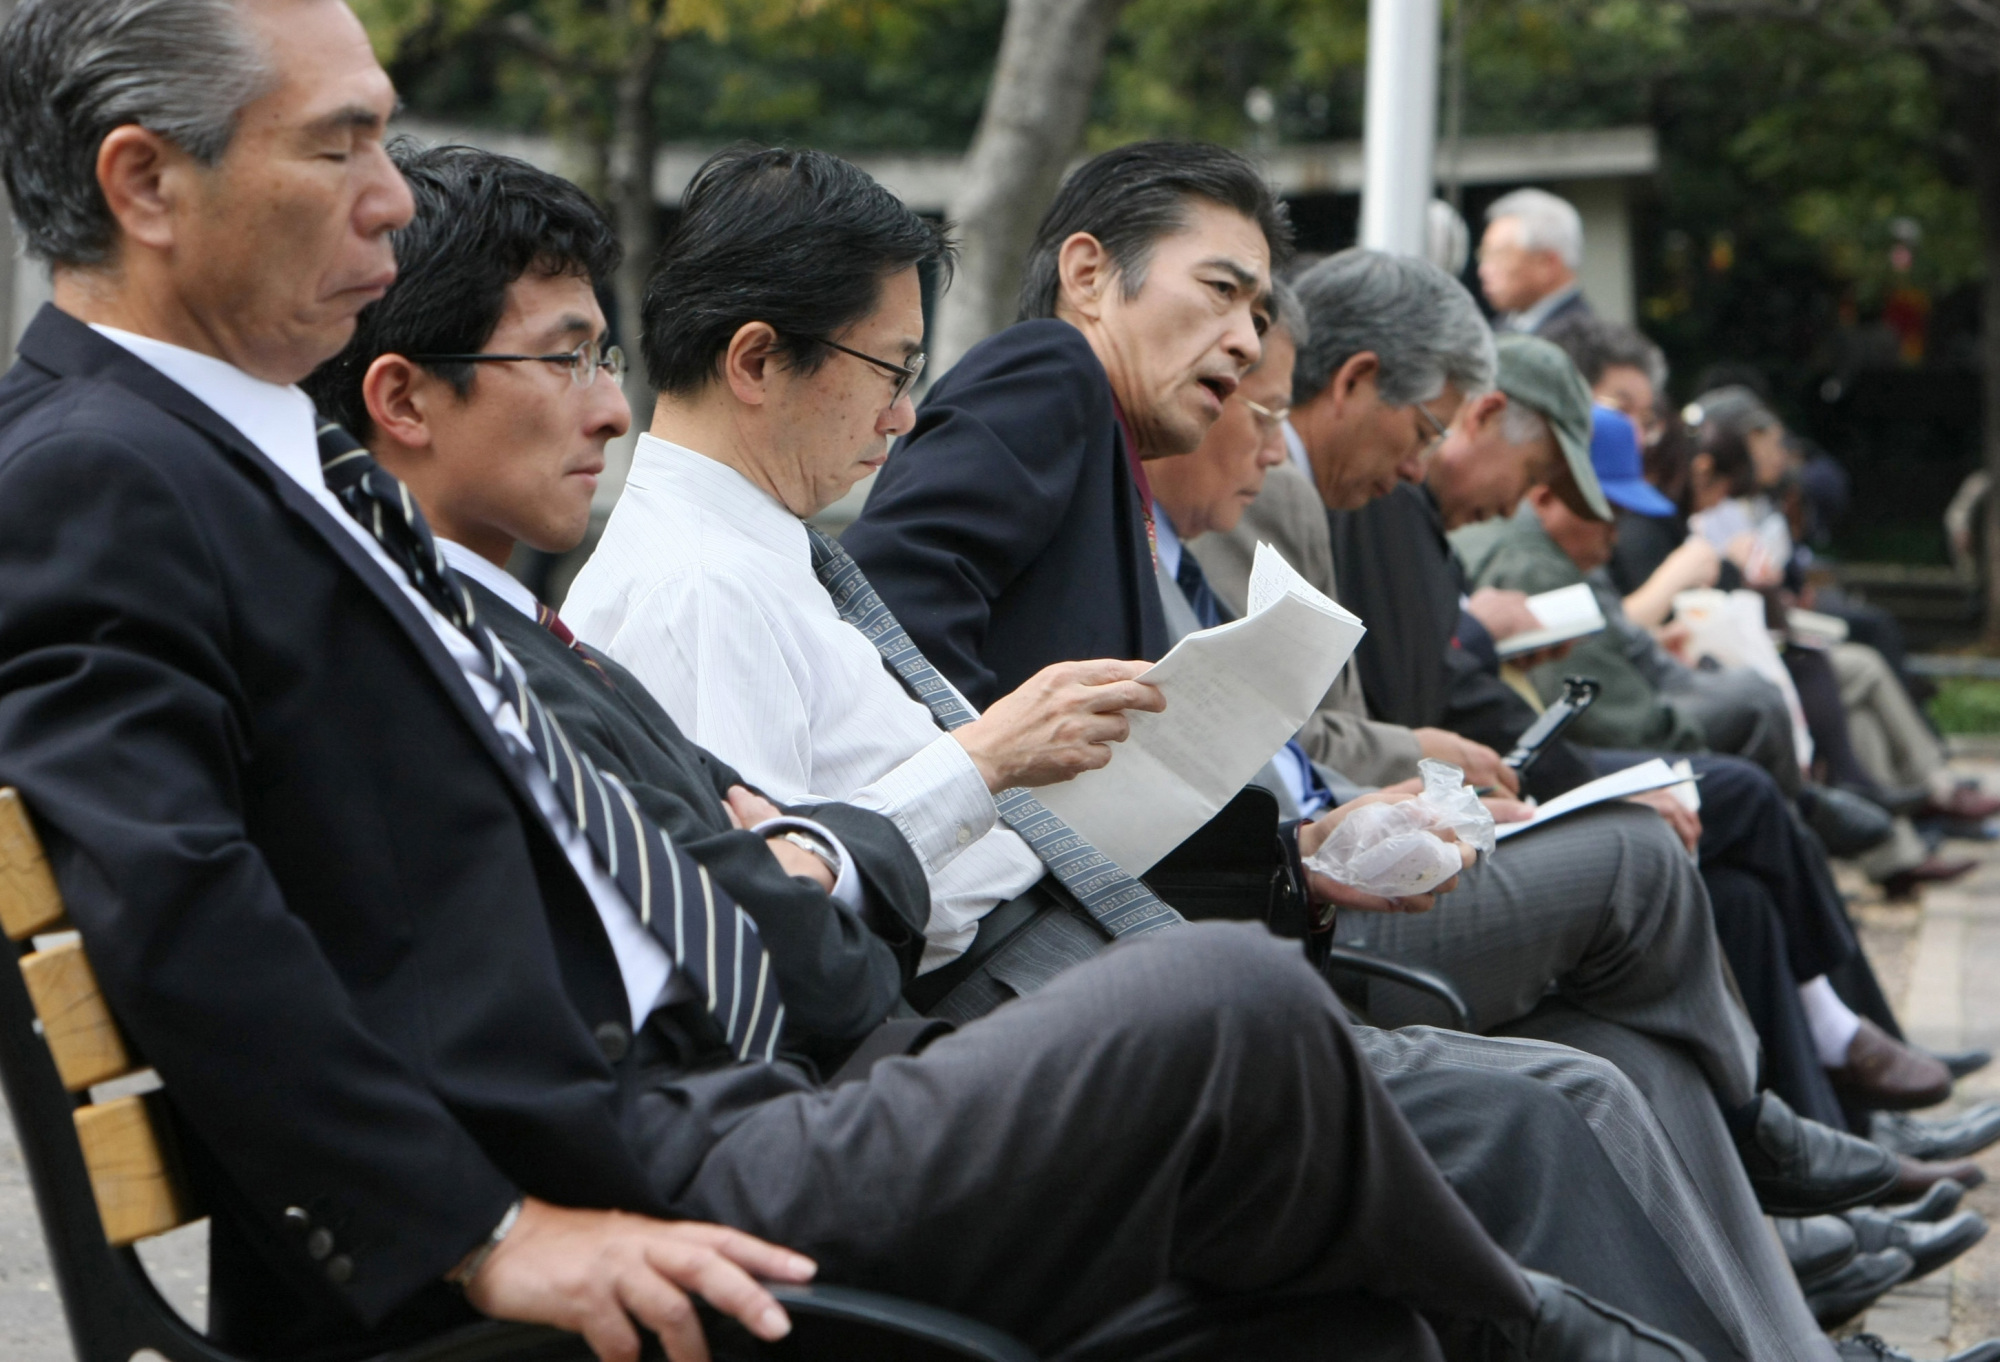 A Cambridge University study on Japanese men indicates that although they are starting to develop a softer side and help women, the basic postwar gender traits regarding division of labor and male domination have not changed. | BLOOMBERG